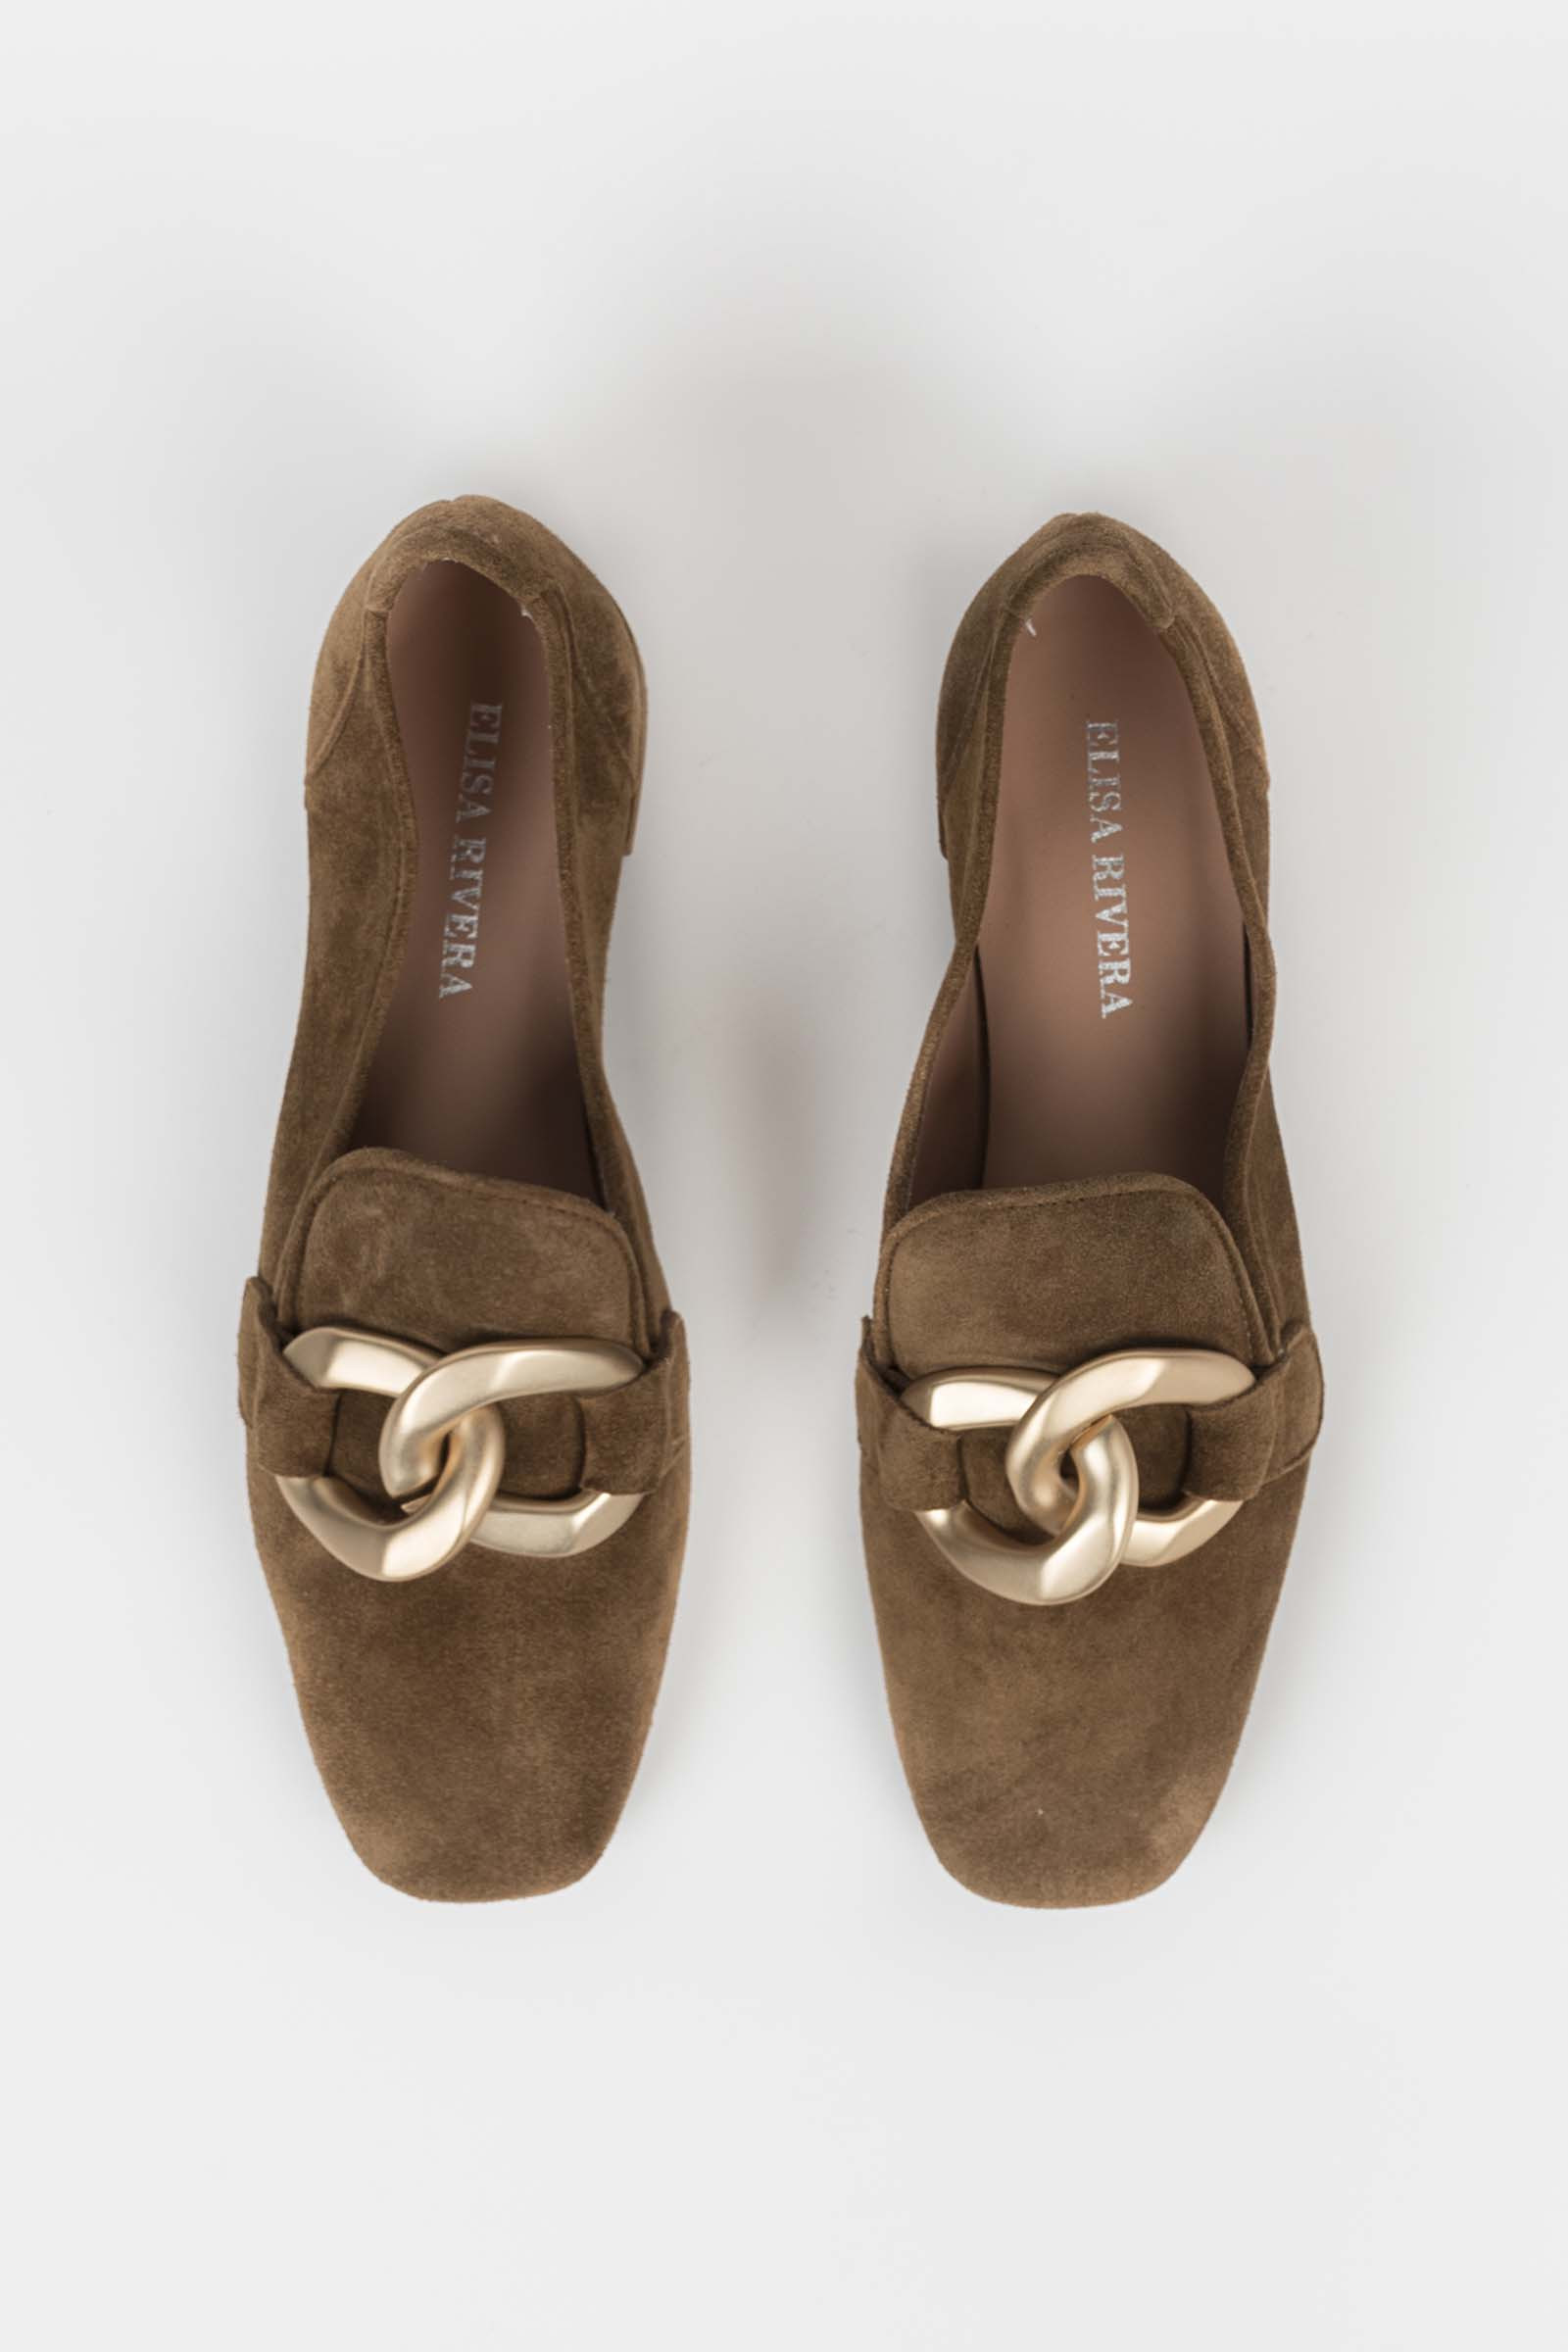 gold chain moccasin